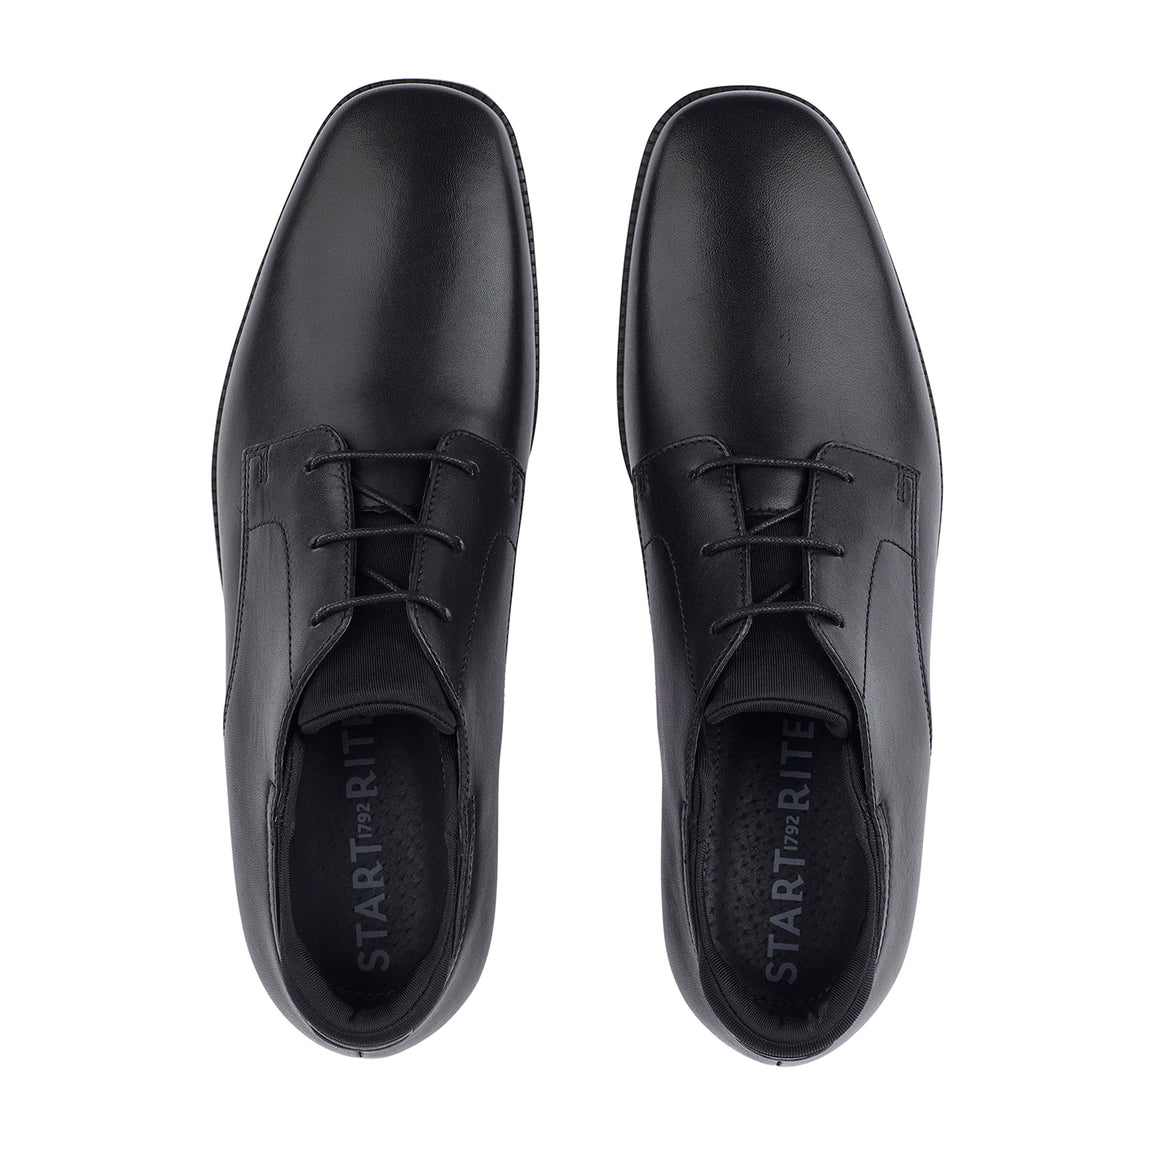 Academy School Shoes in Black